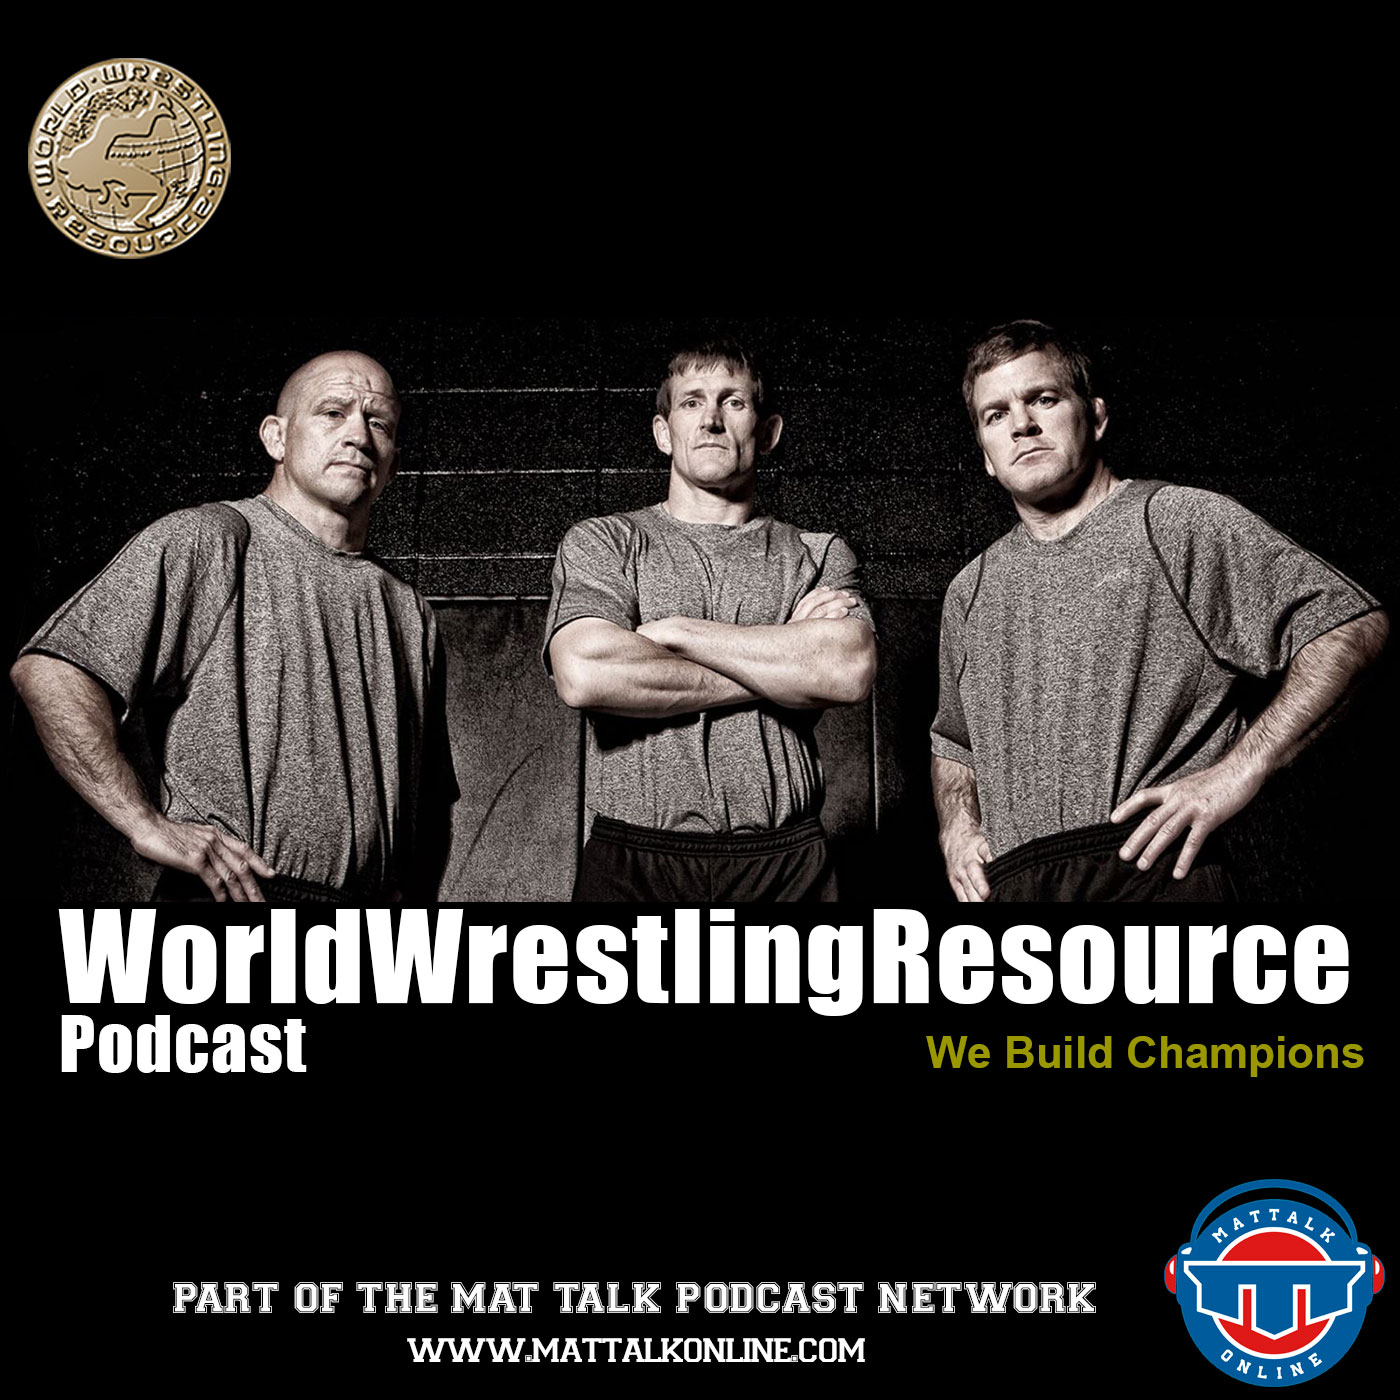 Artwork for WWR18: Two-time All-American Clint Wattenberg breaks down the impact of nutrition on wrestlers with Terry Brands